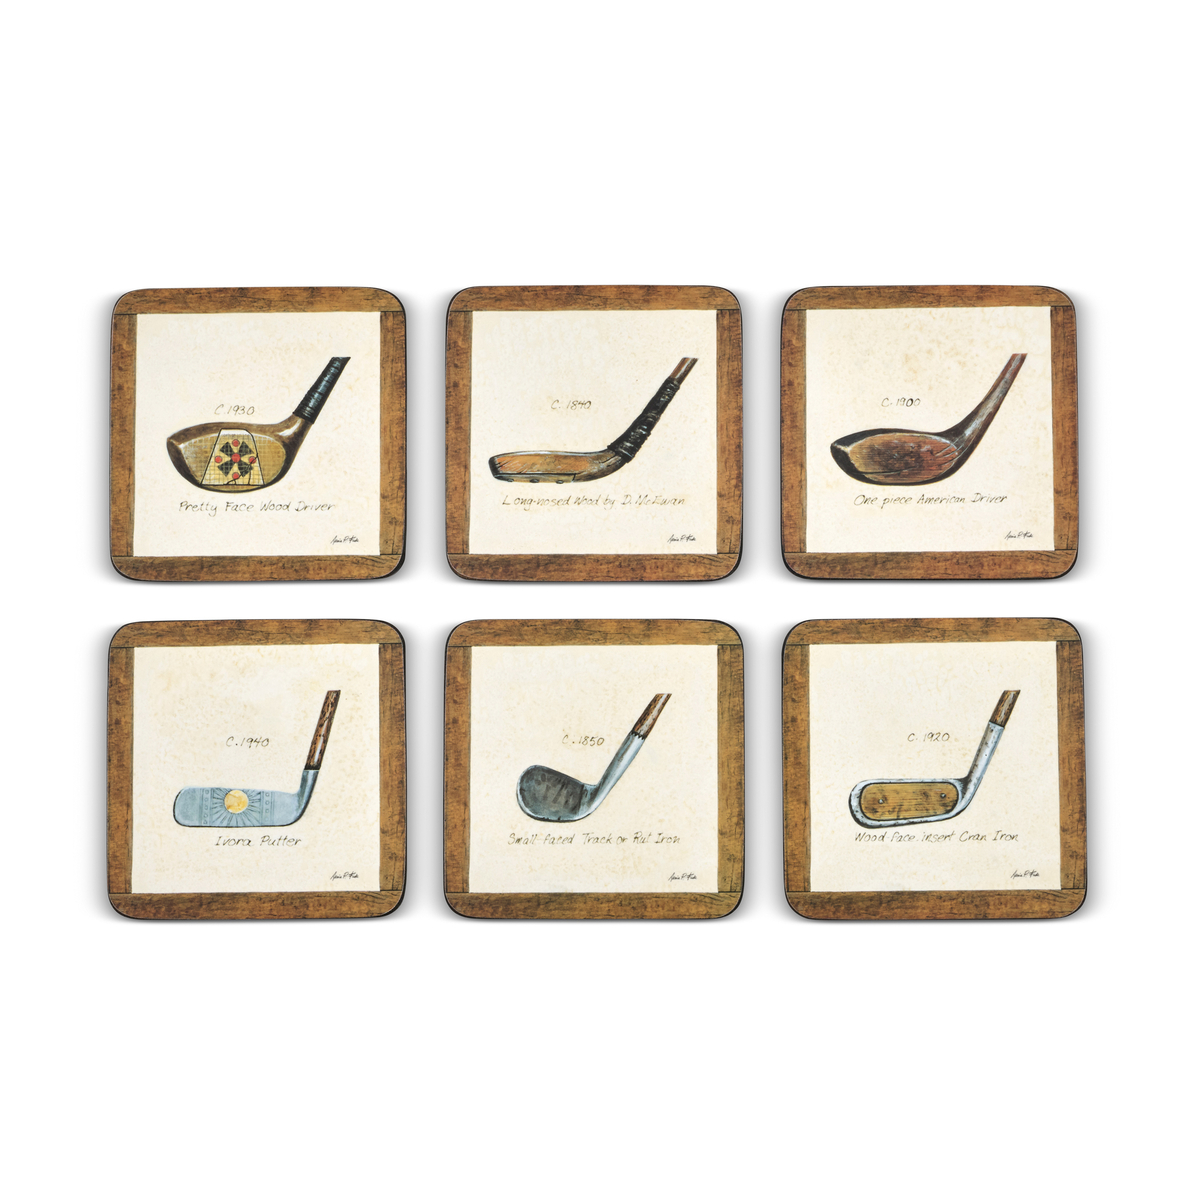 Pimpernel A History of Golf Coasters Set of 6 image number 2